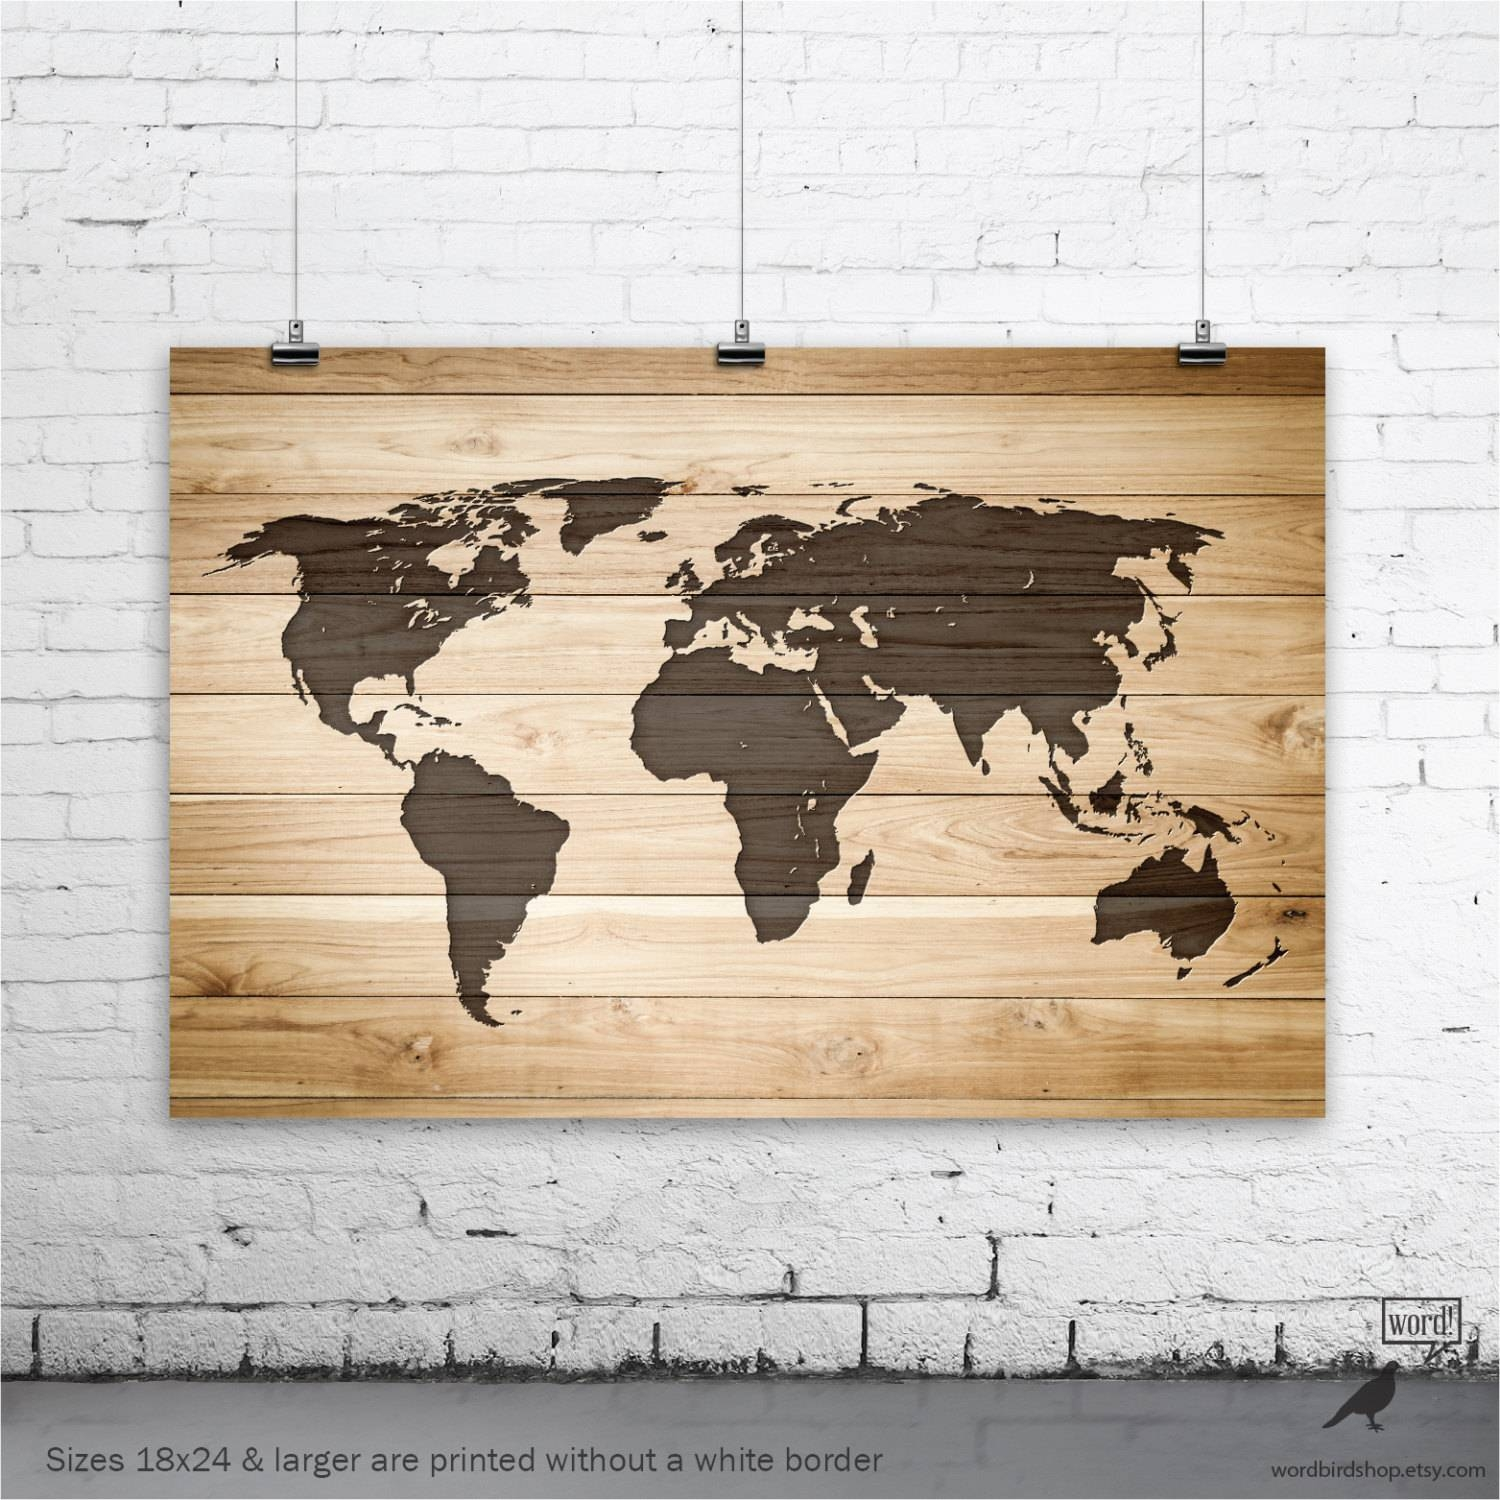 Rustic Wood Large World Map Poster Wood Wall Art Print Gifts Within Best And Newest World Map Wood Wall Art (View 7 of 20)